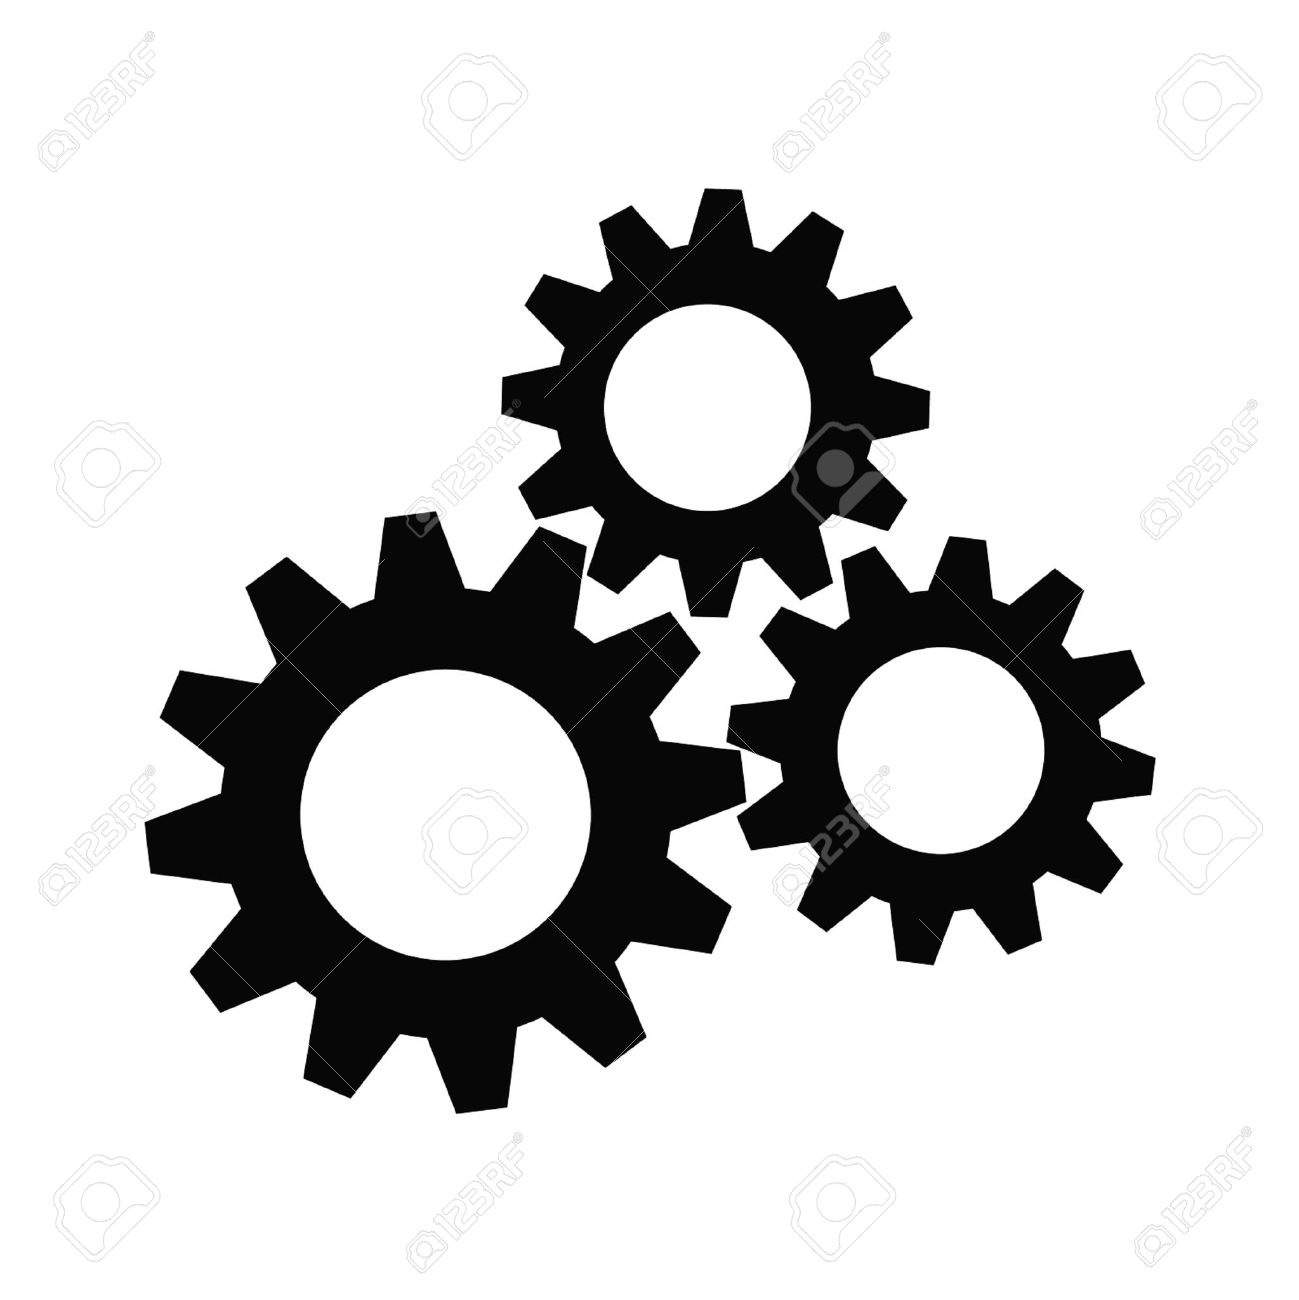 gear collection set of gear wheels black cogs on white background